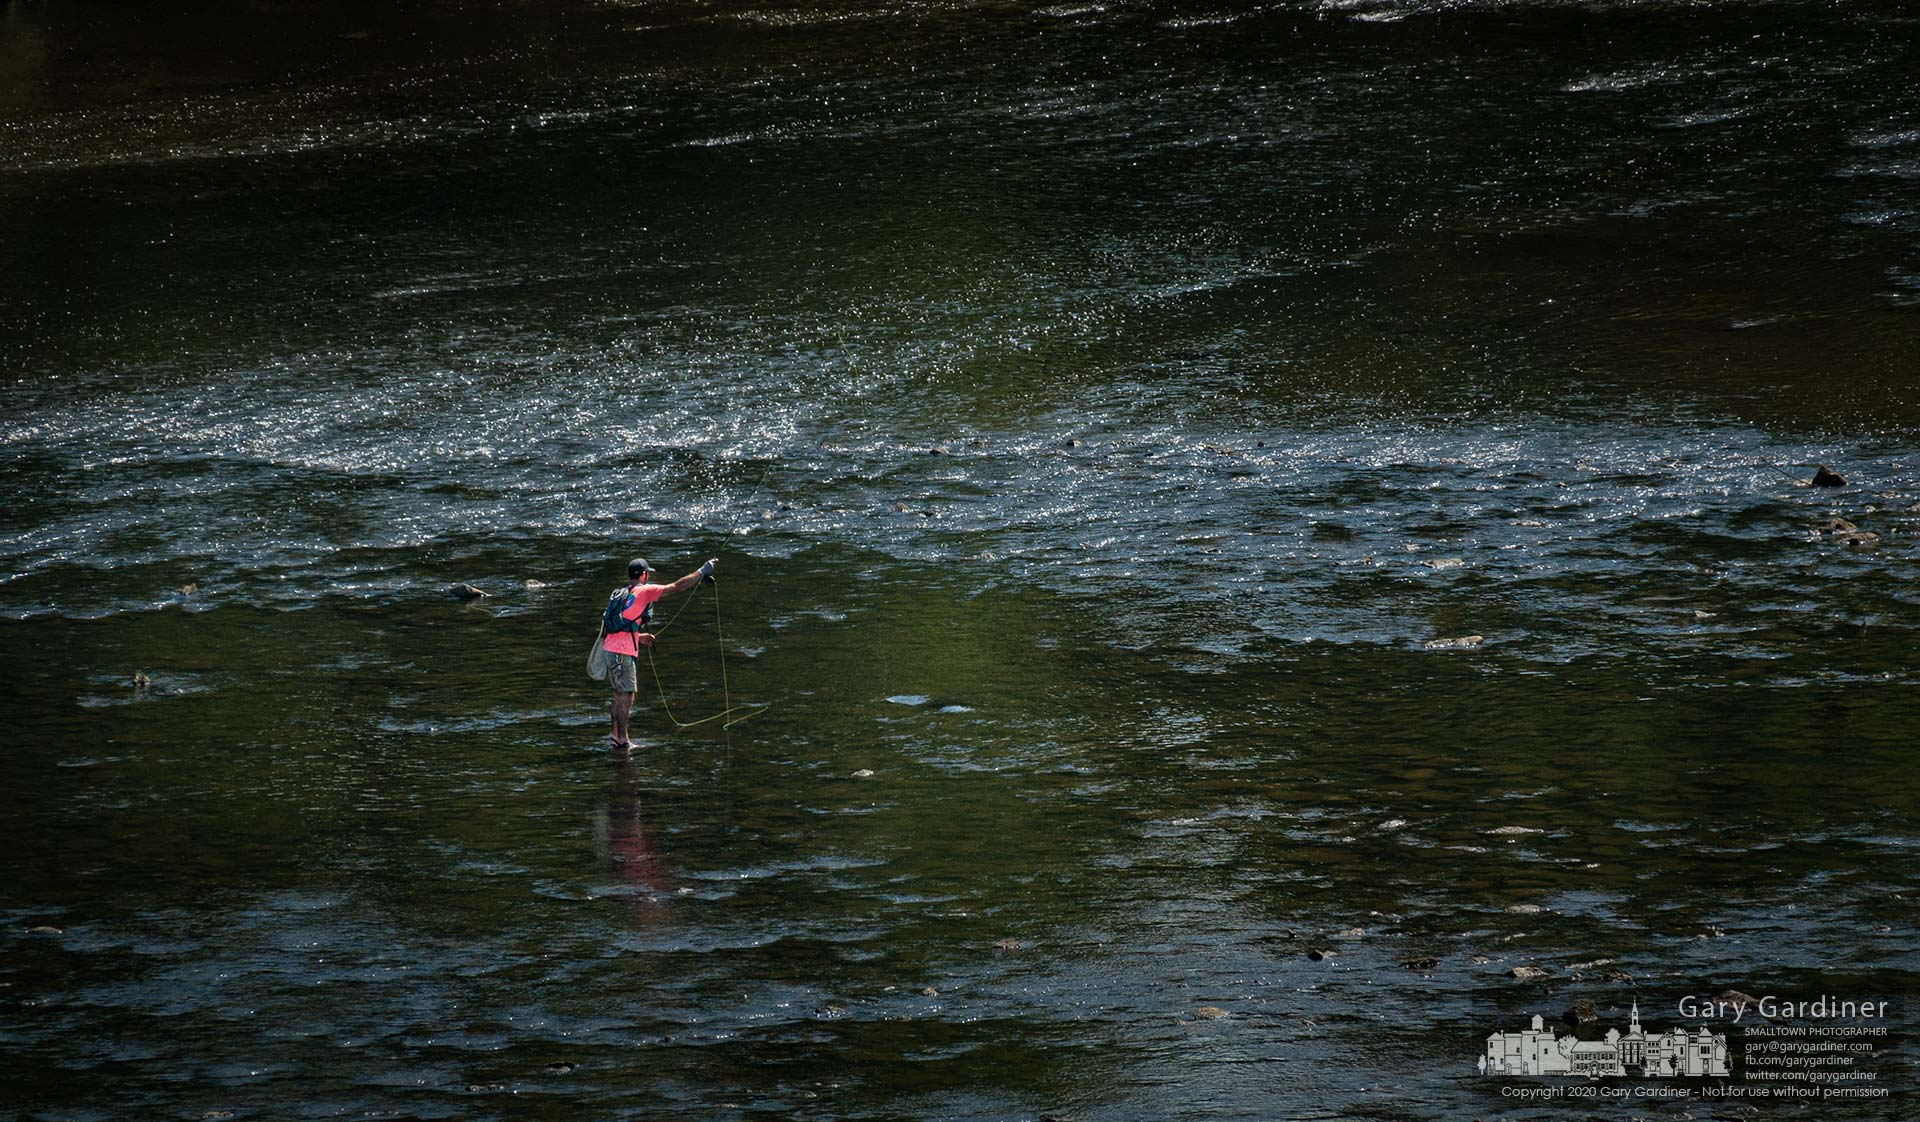 A fly fisherman floats his lure downstream in the waters of Big Walnut Creek just below Hoover Dam. My Final Photo for Aug. 13, 2020.